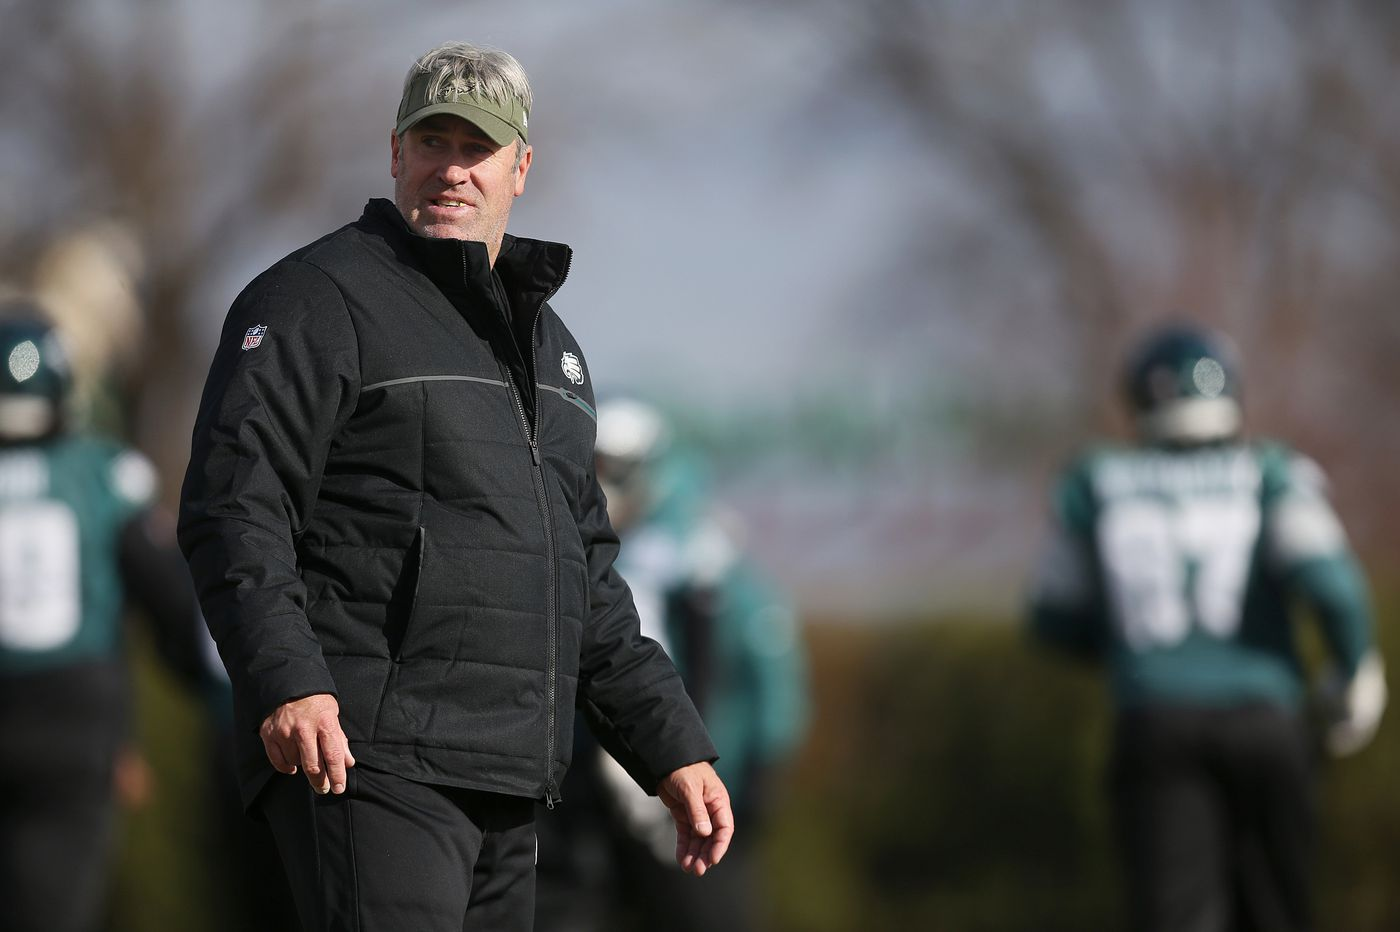 Eagles' Doug Pederson: No place for abusers in NFL